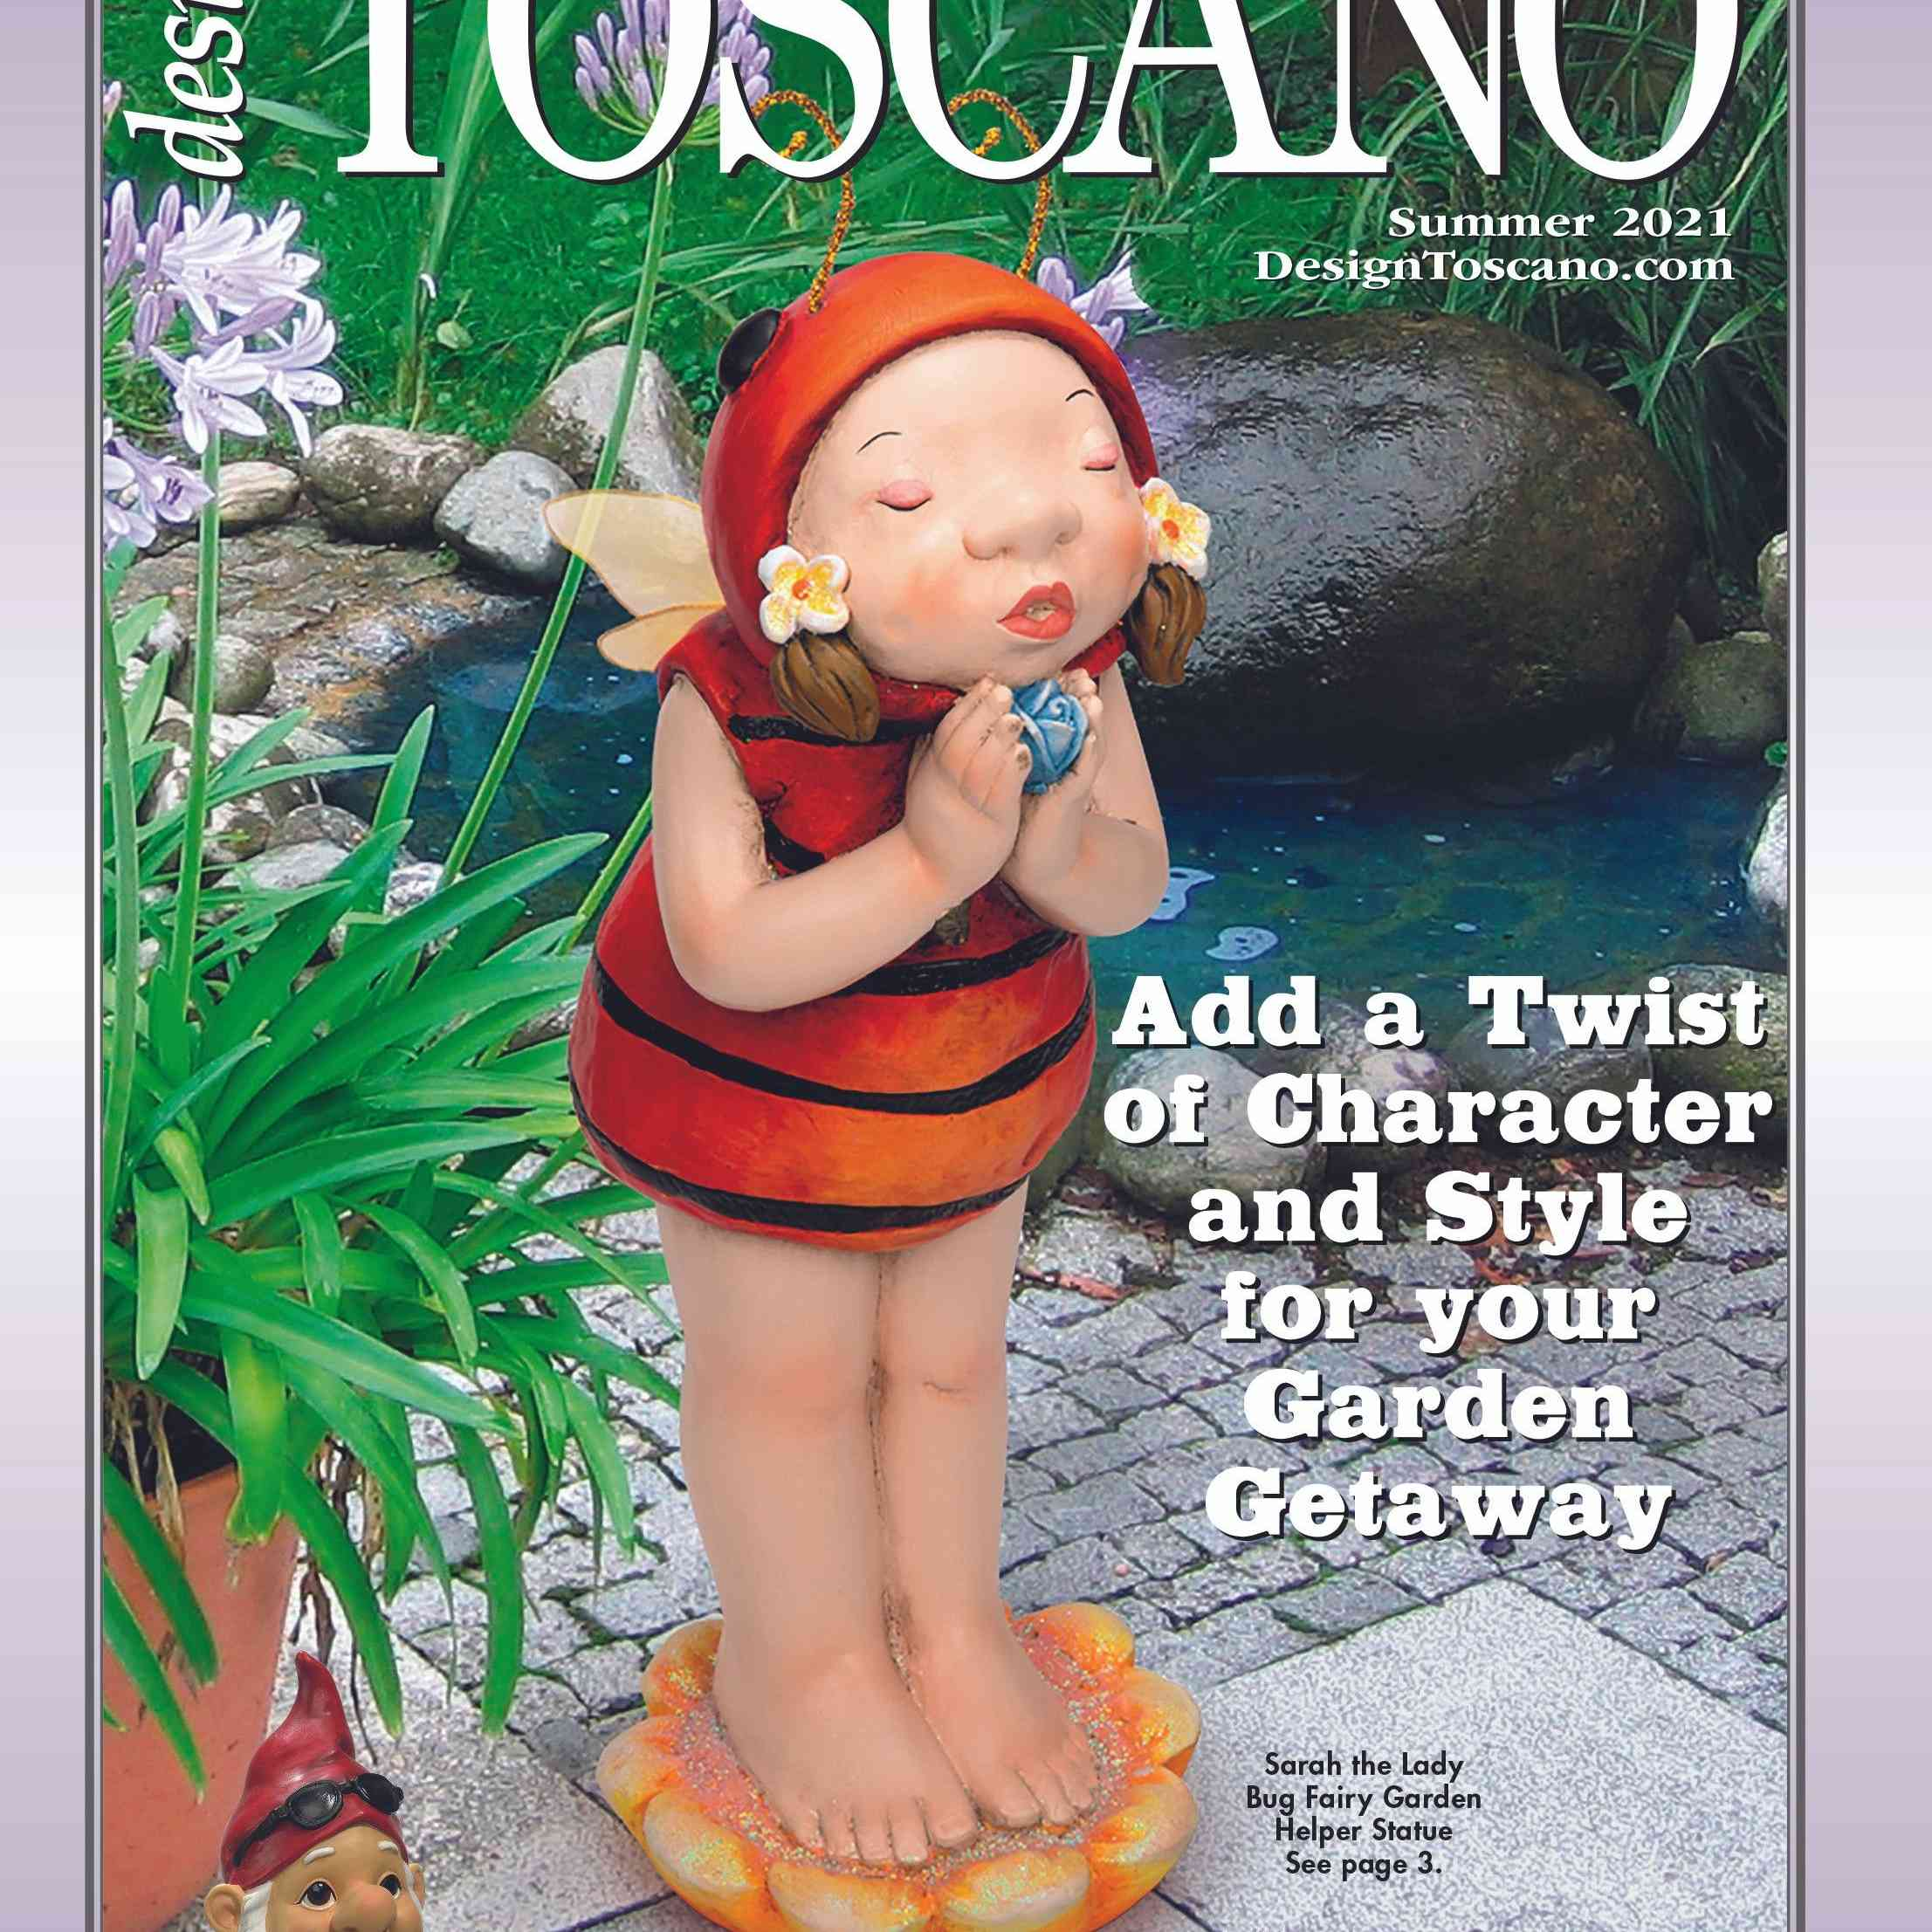 The cover of a catalog with a garden gnome